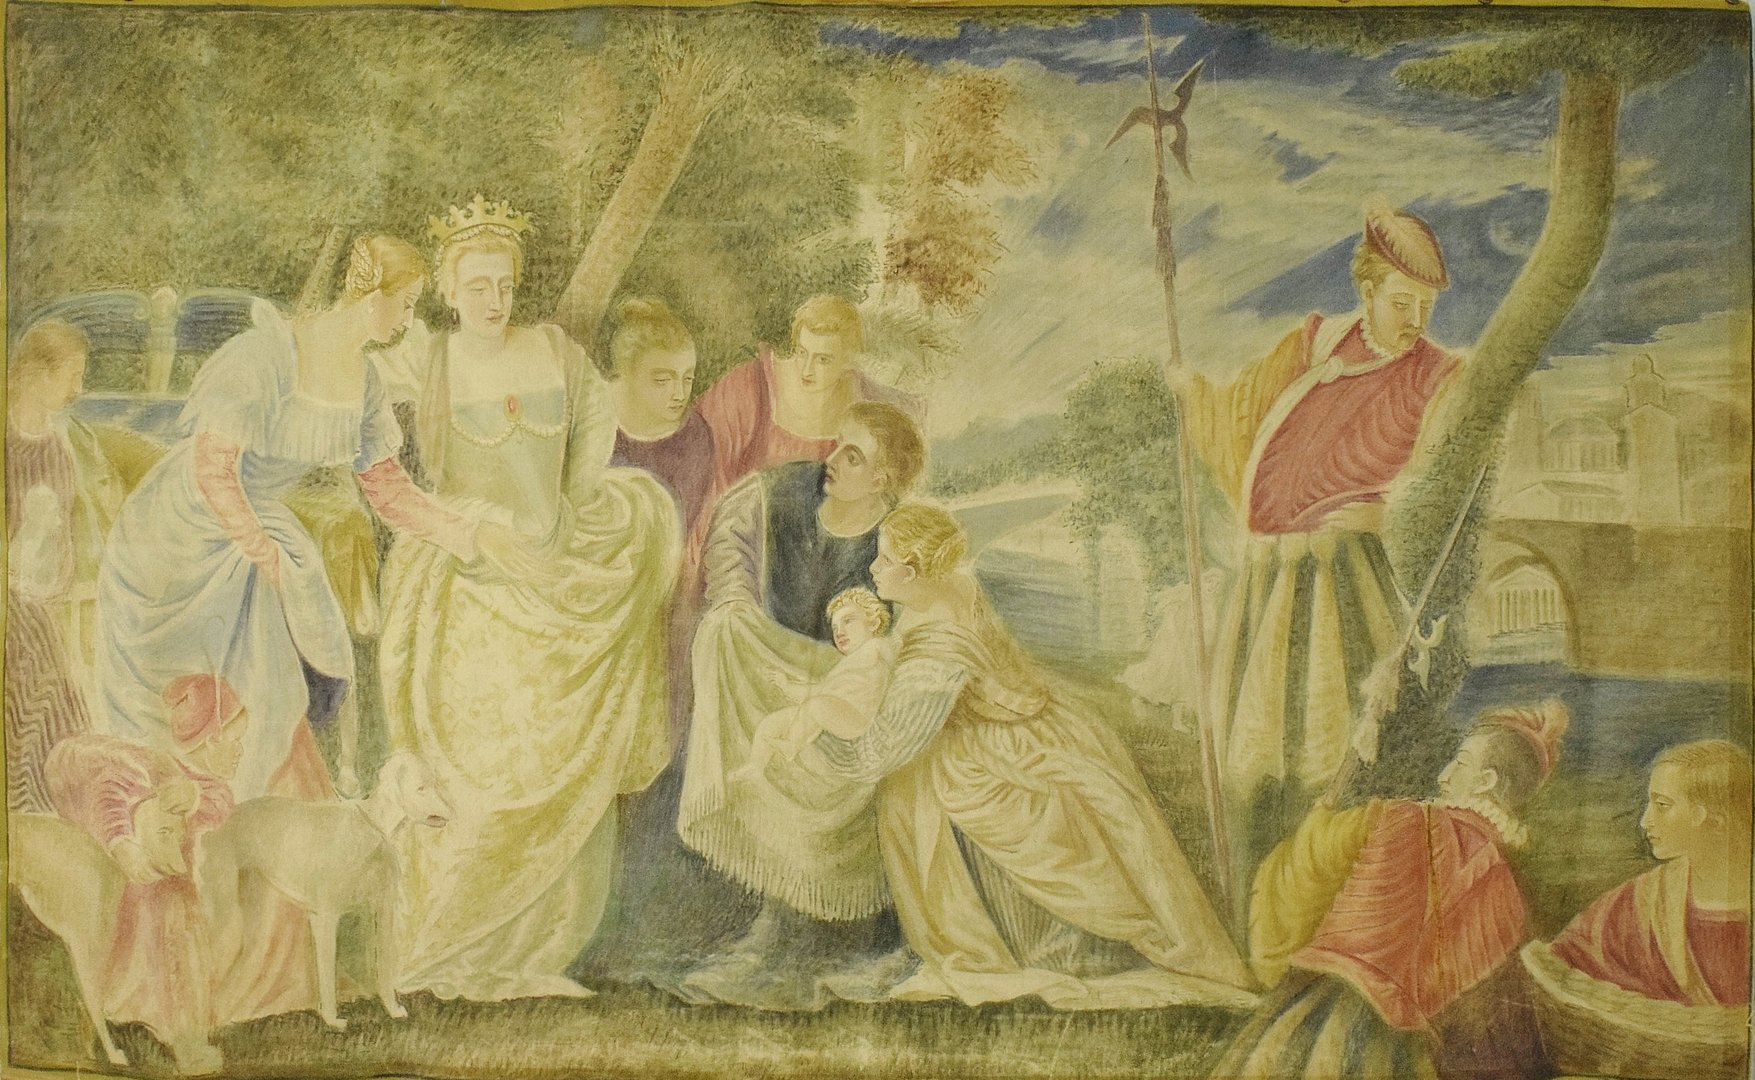 B1340 - Superb Large Antique French Painted Mural Wall Hanging, After Paolo Veronese